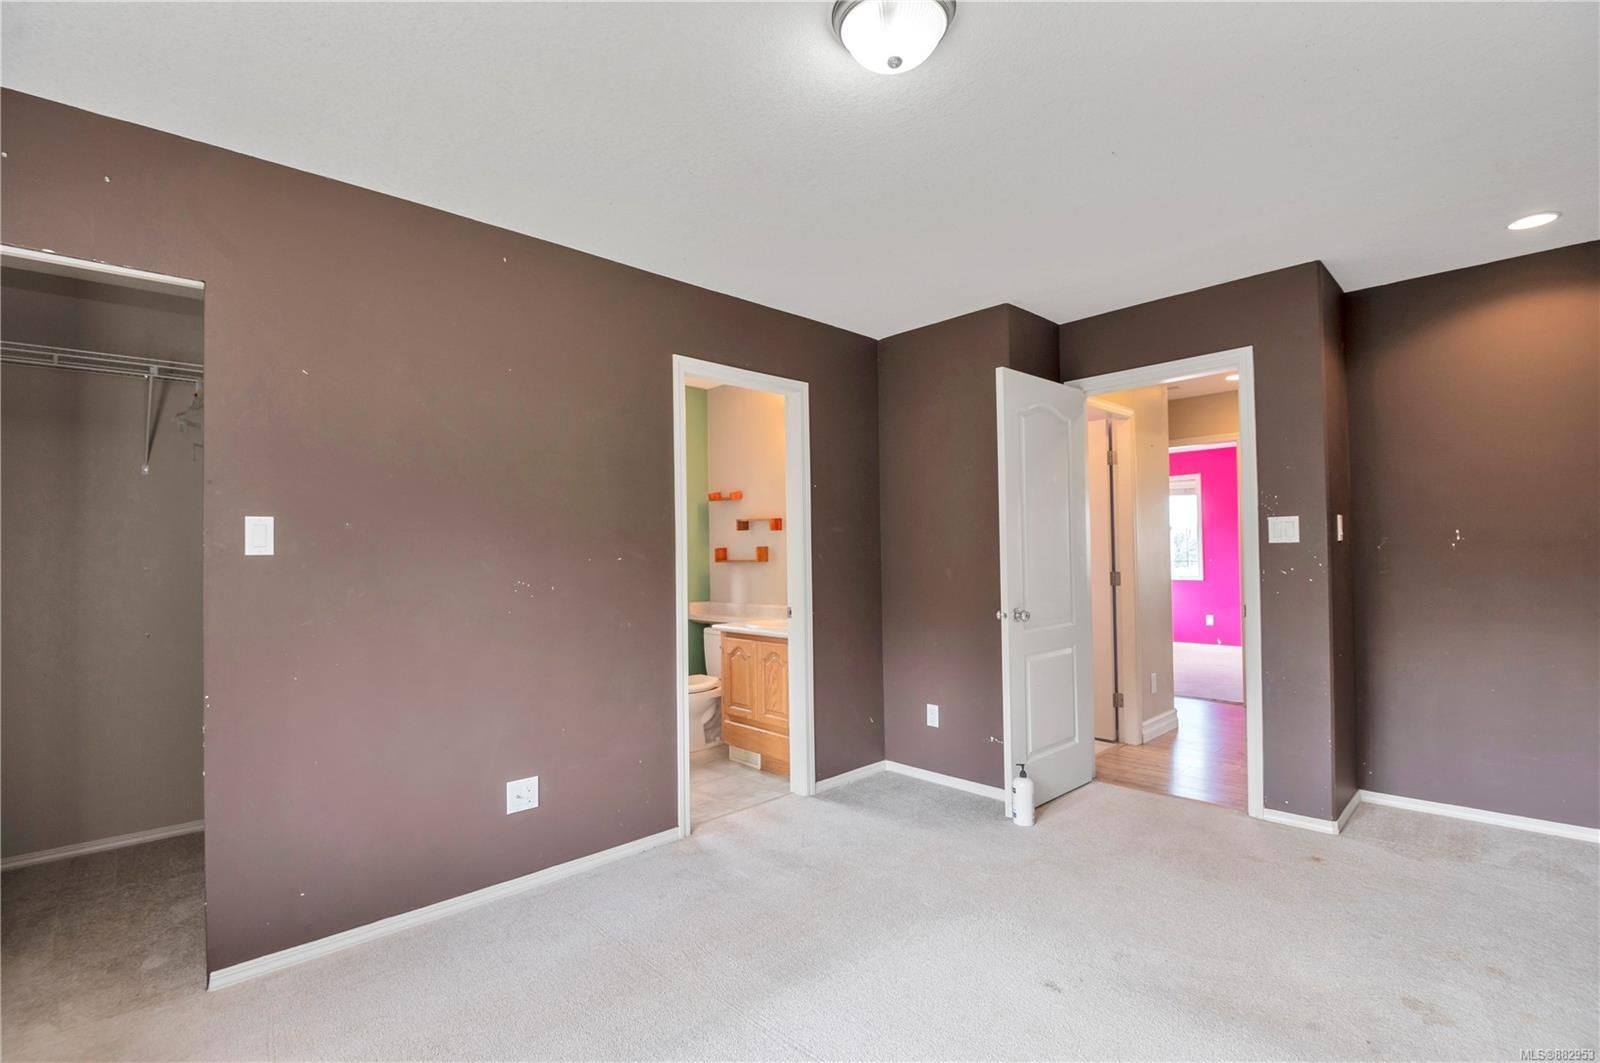 Photo 24: Photos: 732 Oribi Dr in : CR Campbell River Central House for sale (Campbell River)  : MLS®# 882953